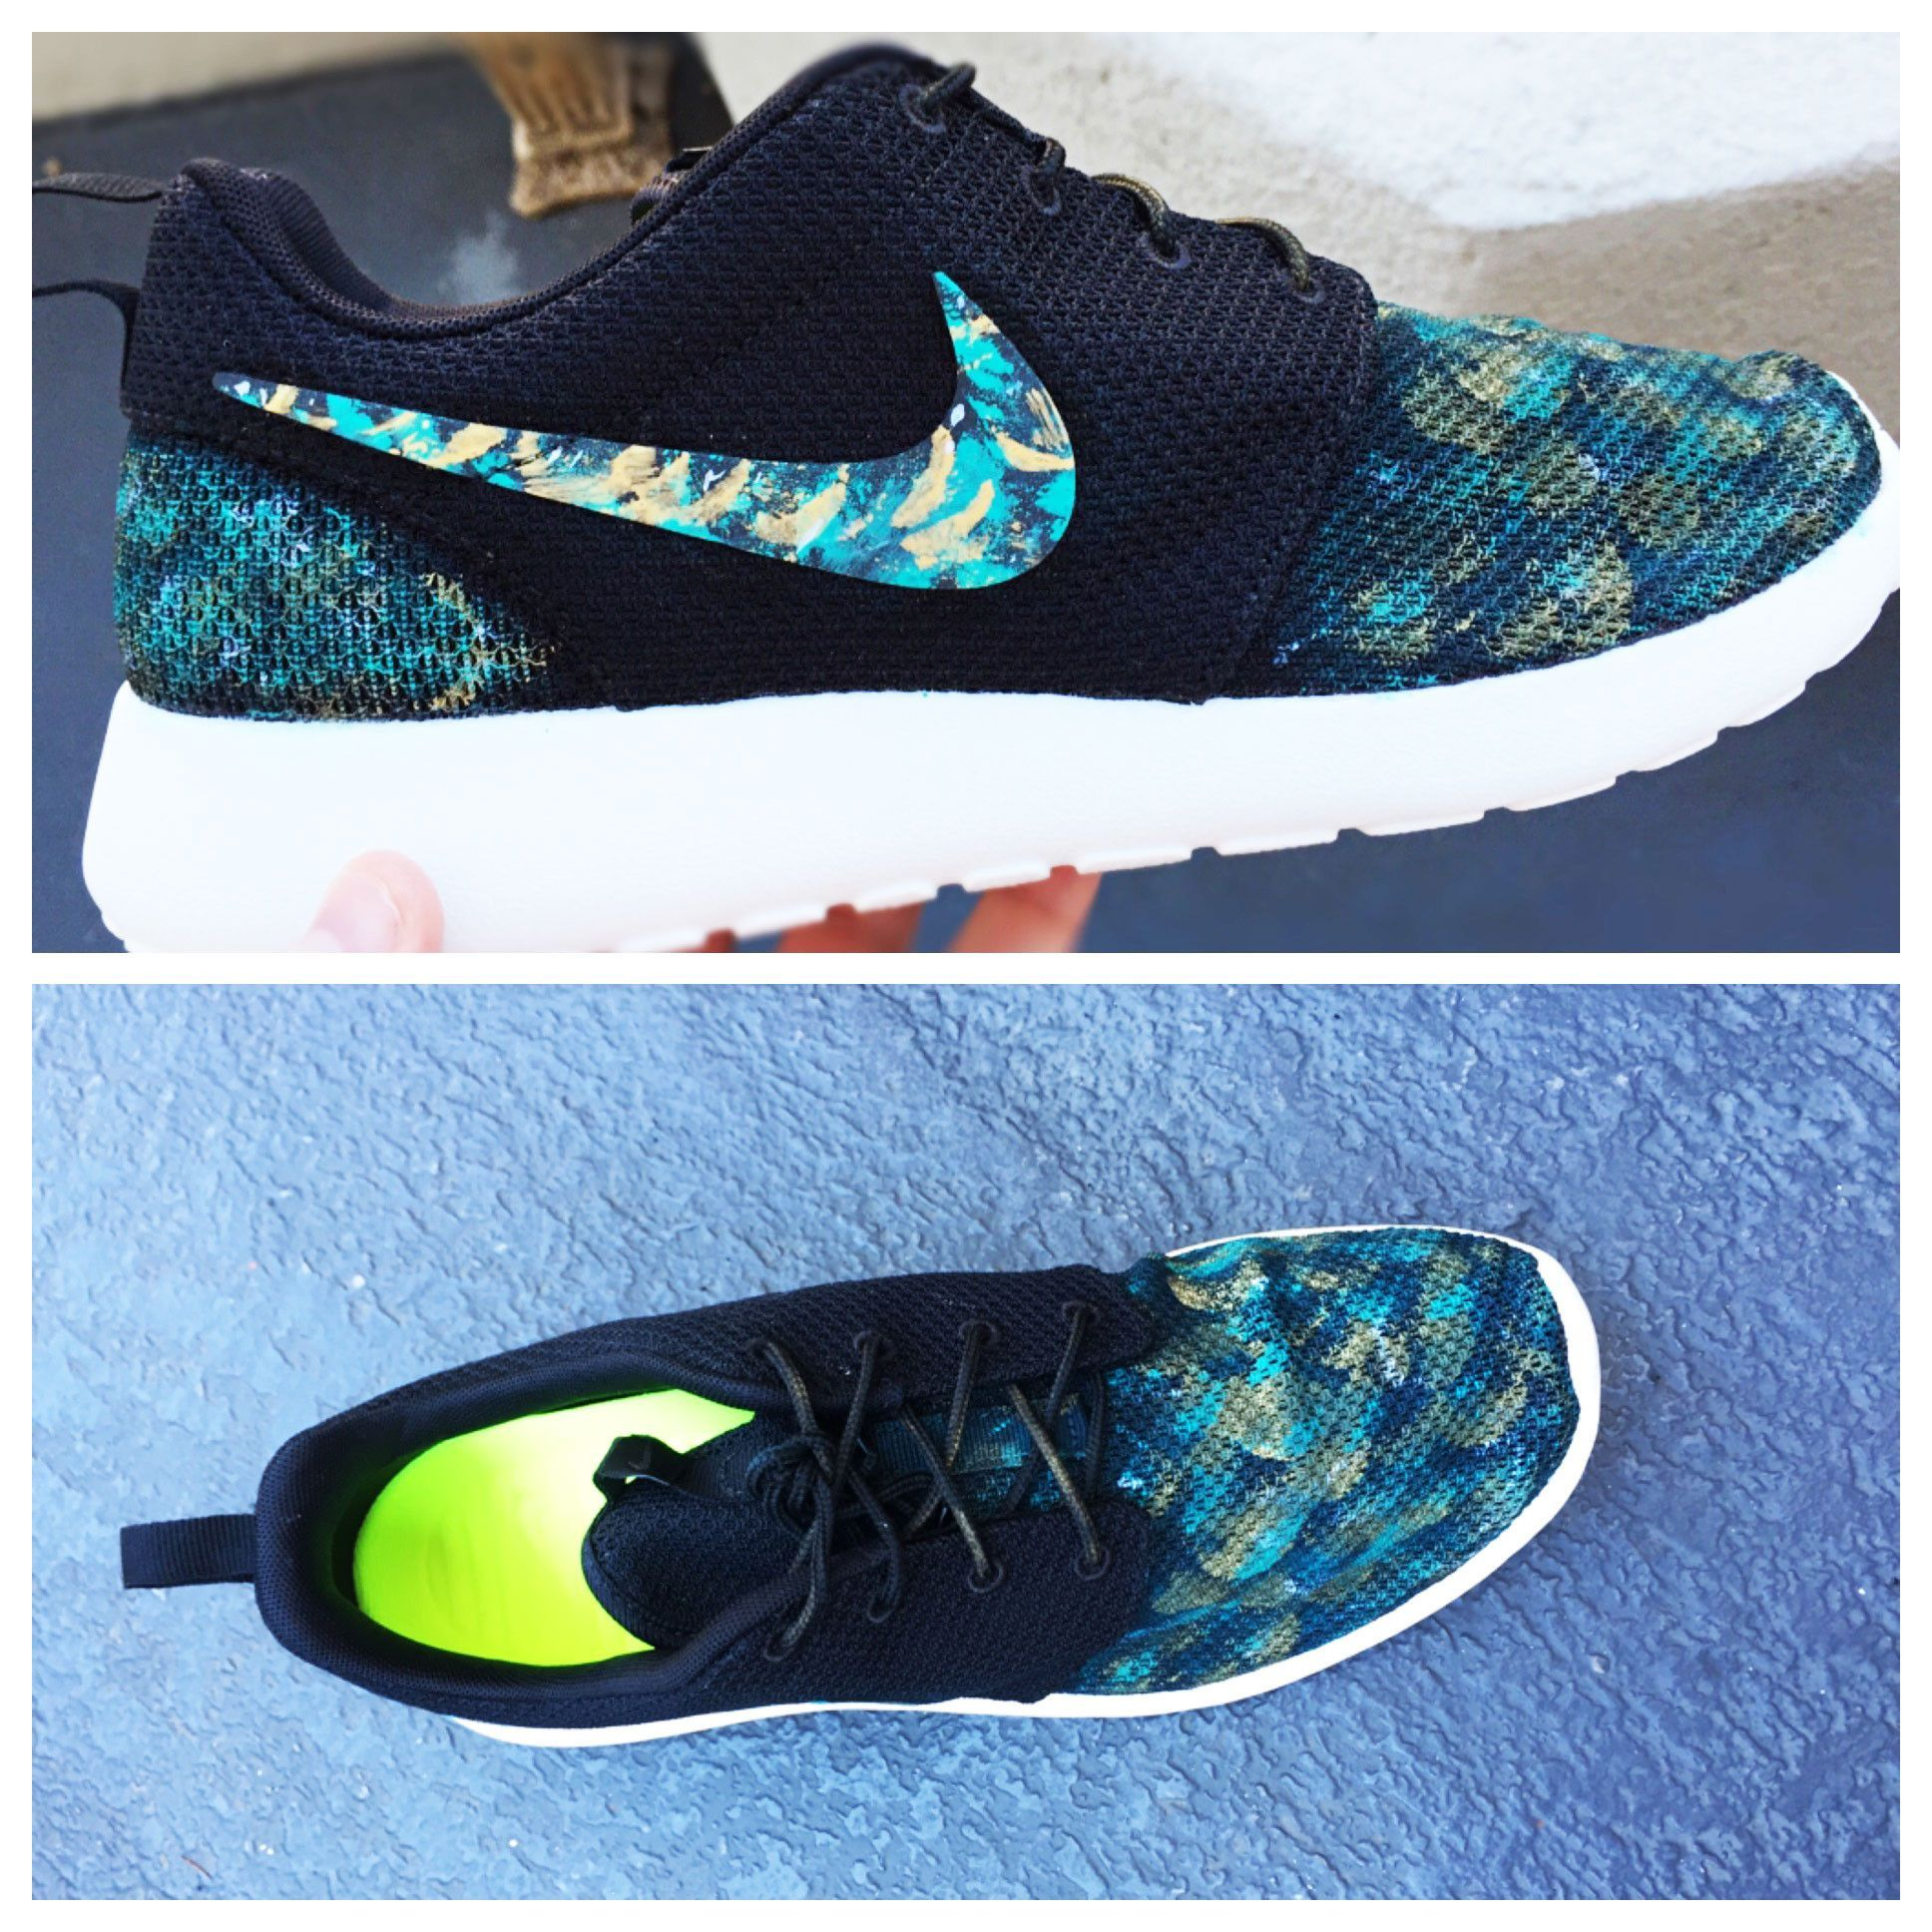 newest fb9bc 9376a Mens custom nike roshe shoes, treasure hunt,  marine treasure hunt  teal  and gold design, hand painted, mens custom roshe run